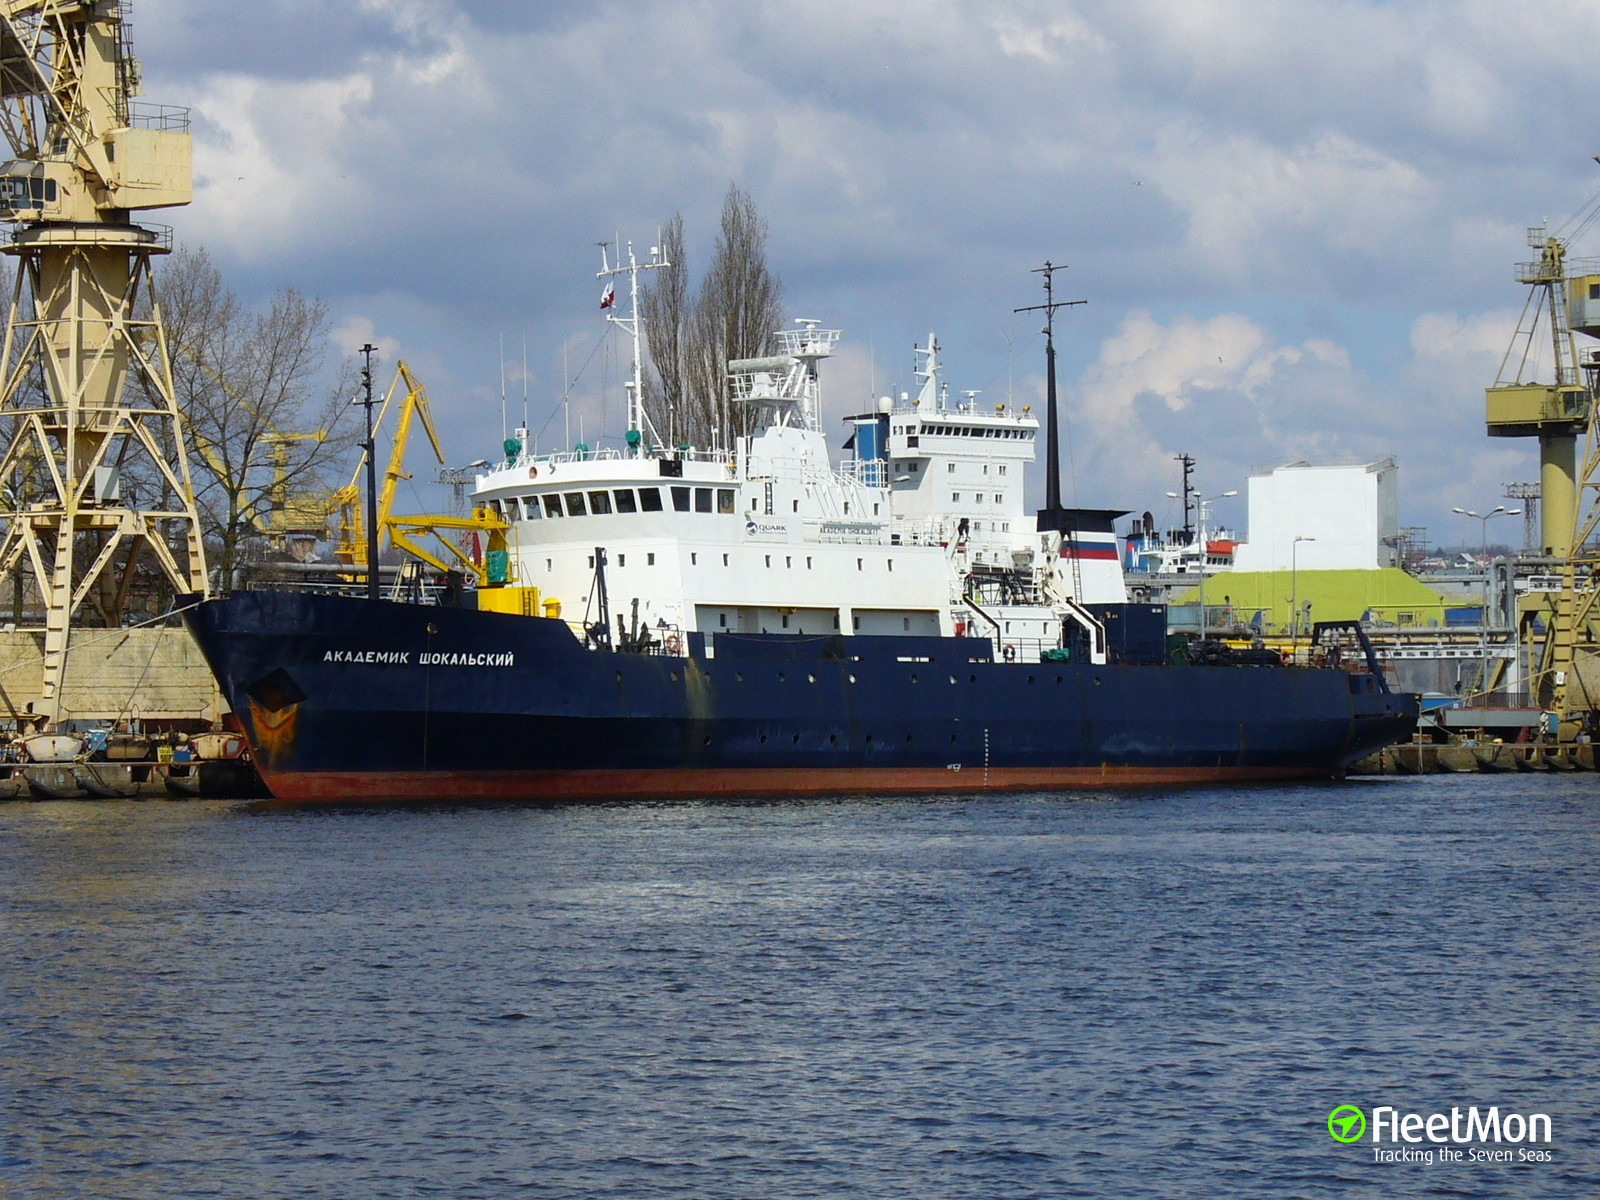 Finland-built research ship A. Shokalskiy trapped in Antarctic ice, no danger to vessel and people